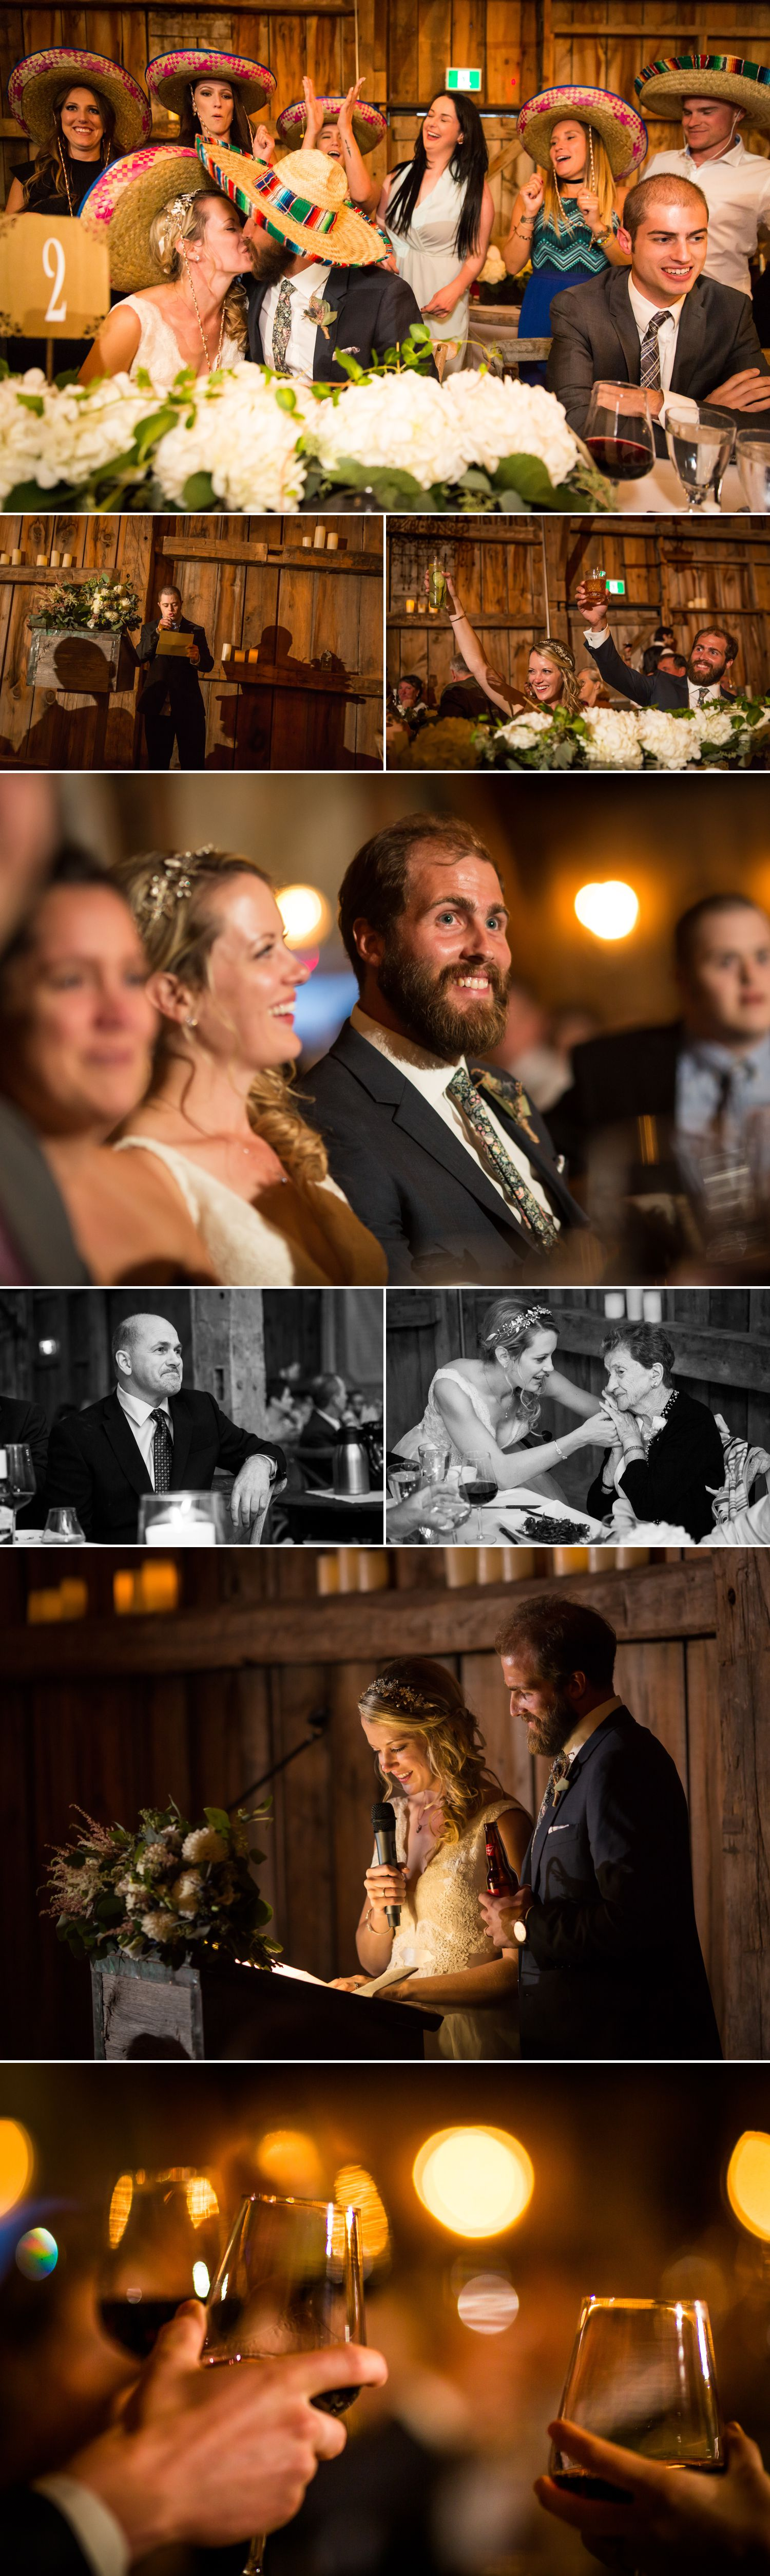 The bride and groom enjoying speeches during their wedding reception at Evermore